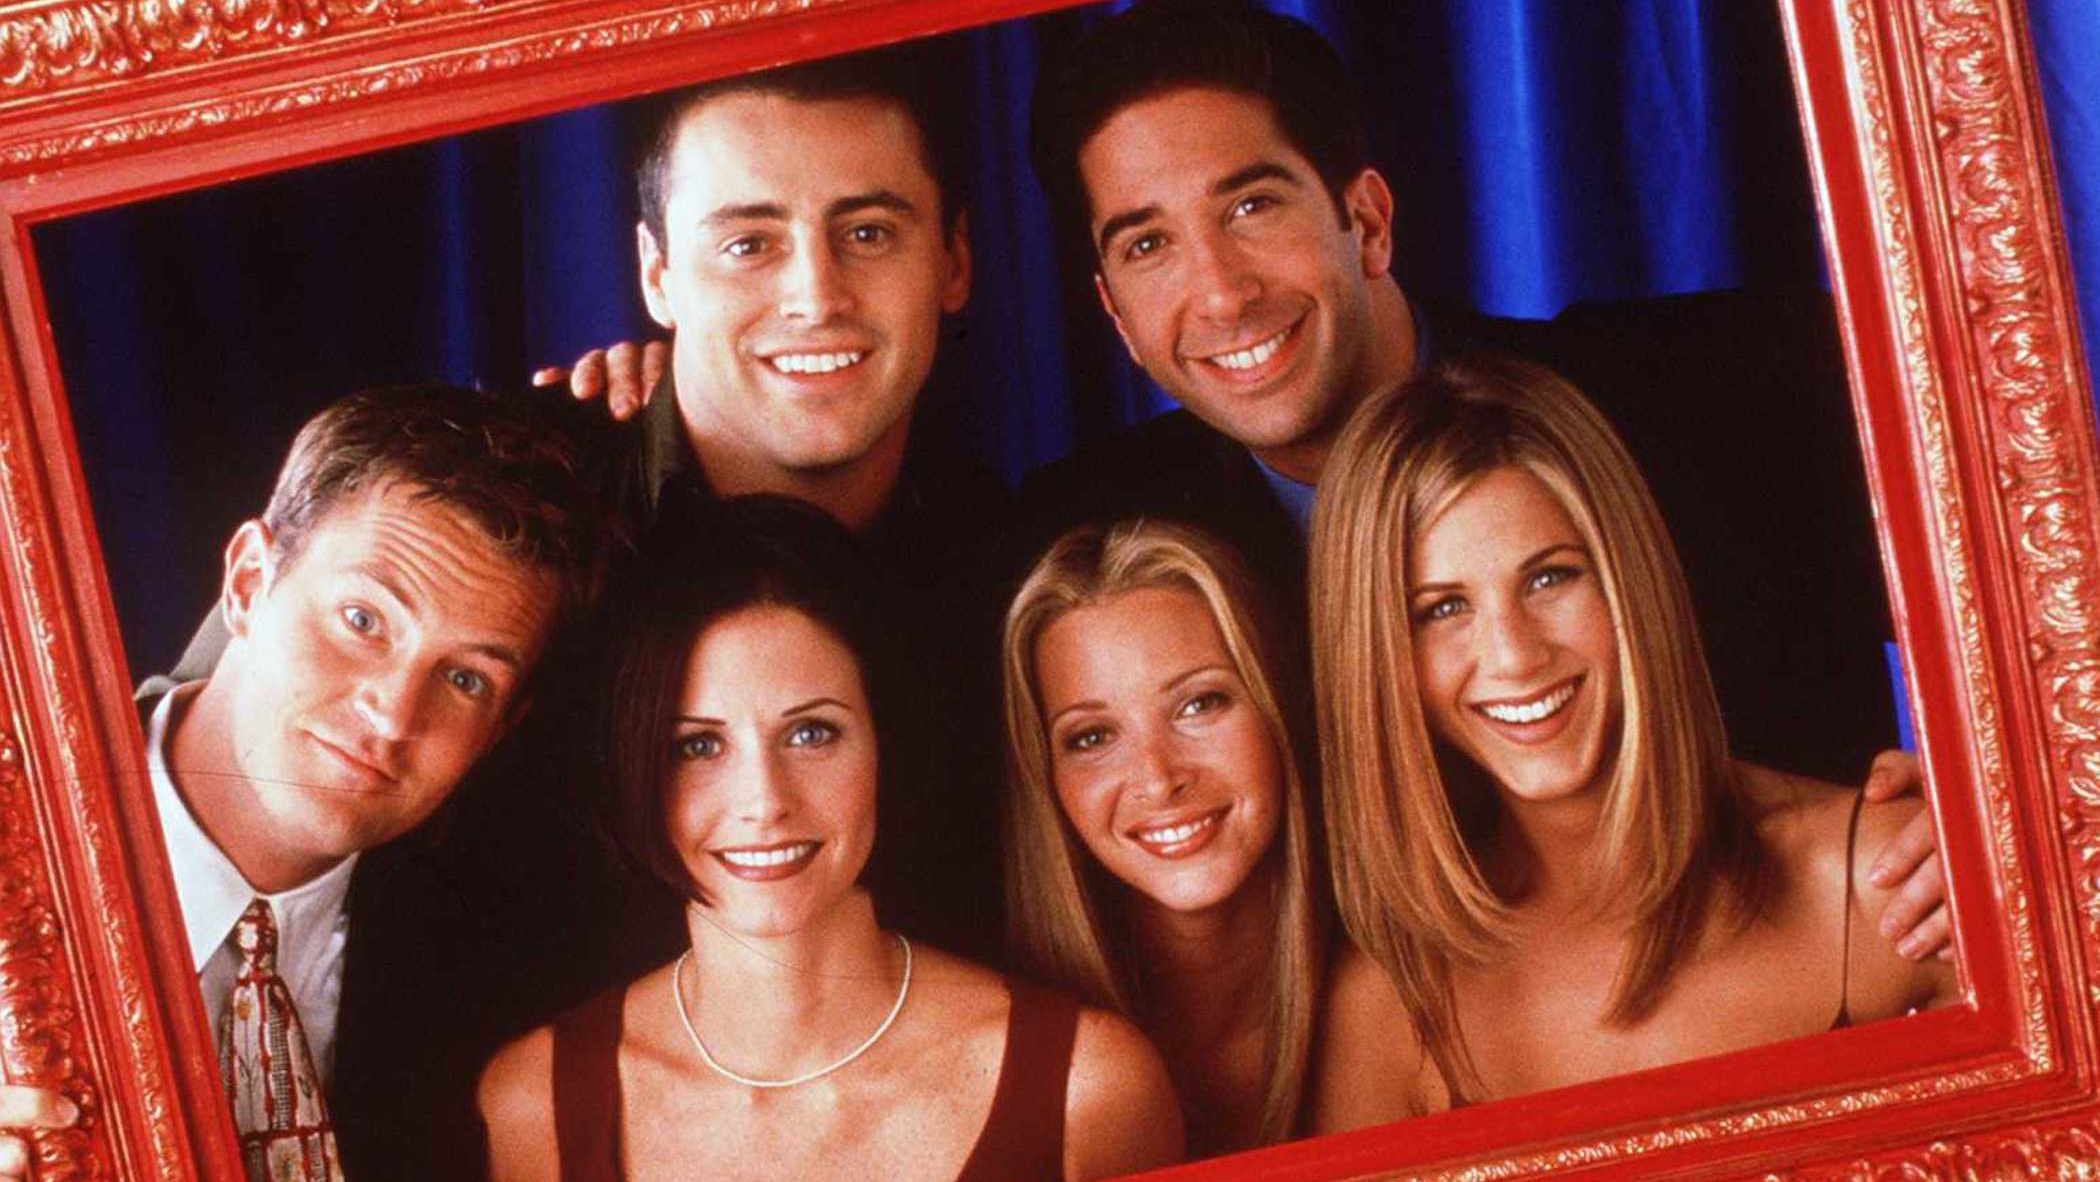 Friends's Lisa Kudrow and Matt LeBlanc Once Pitched the Idea of a Phoebe and Joey Romance